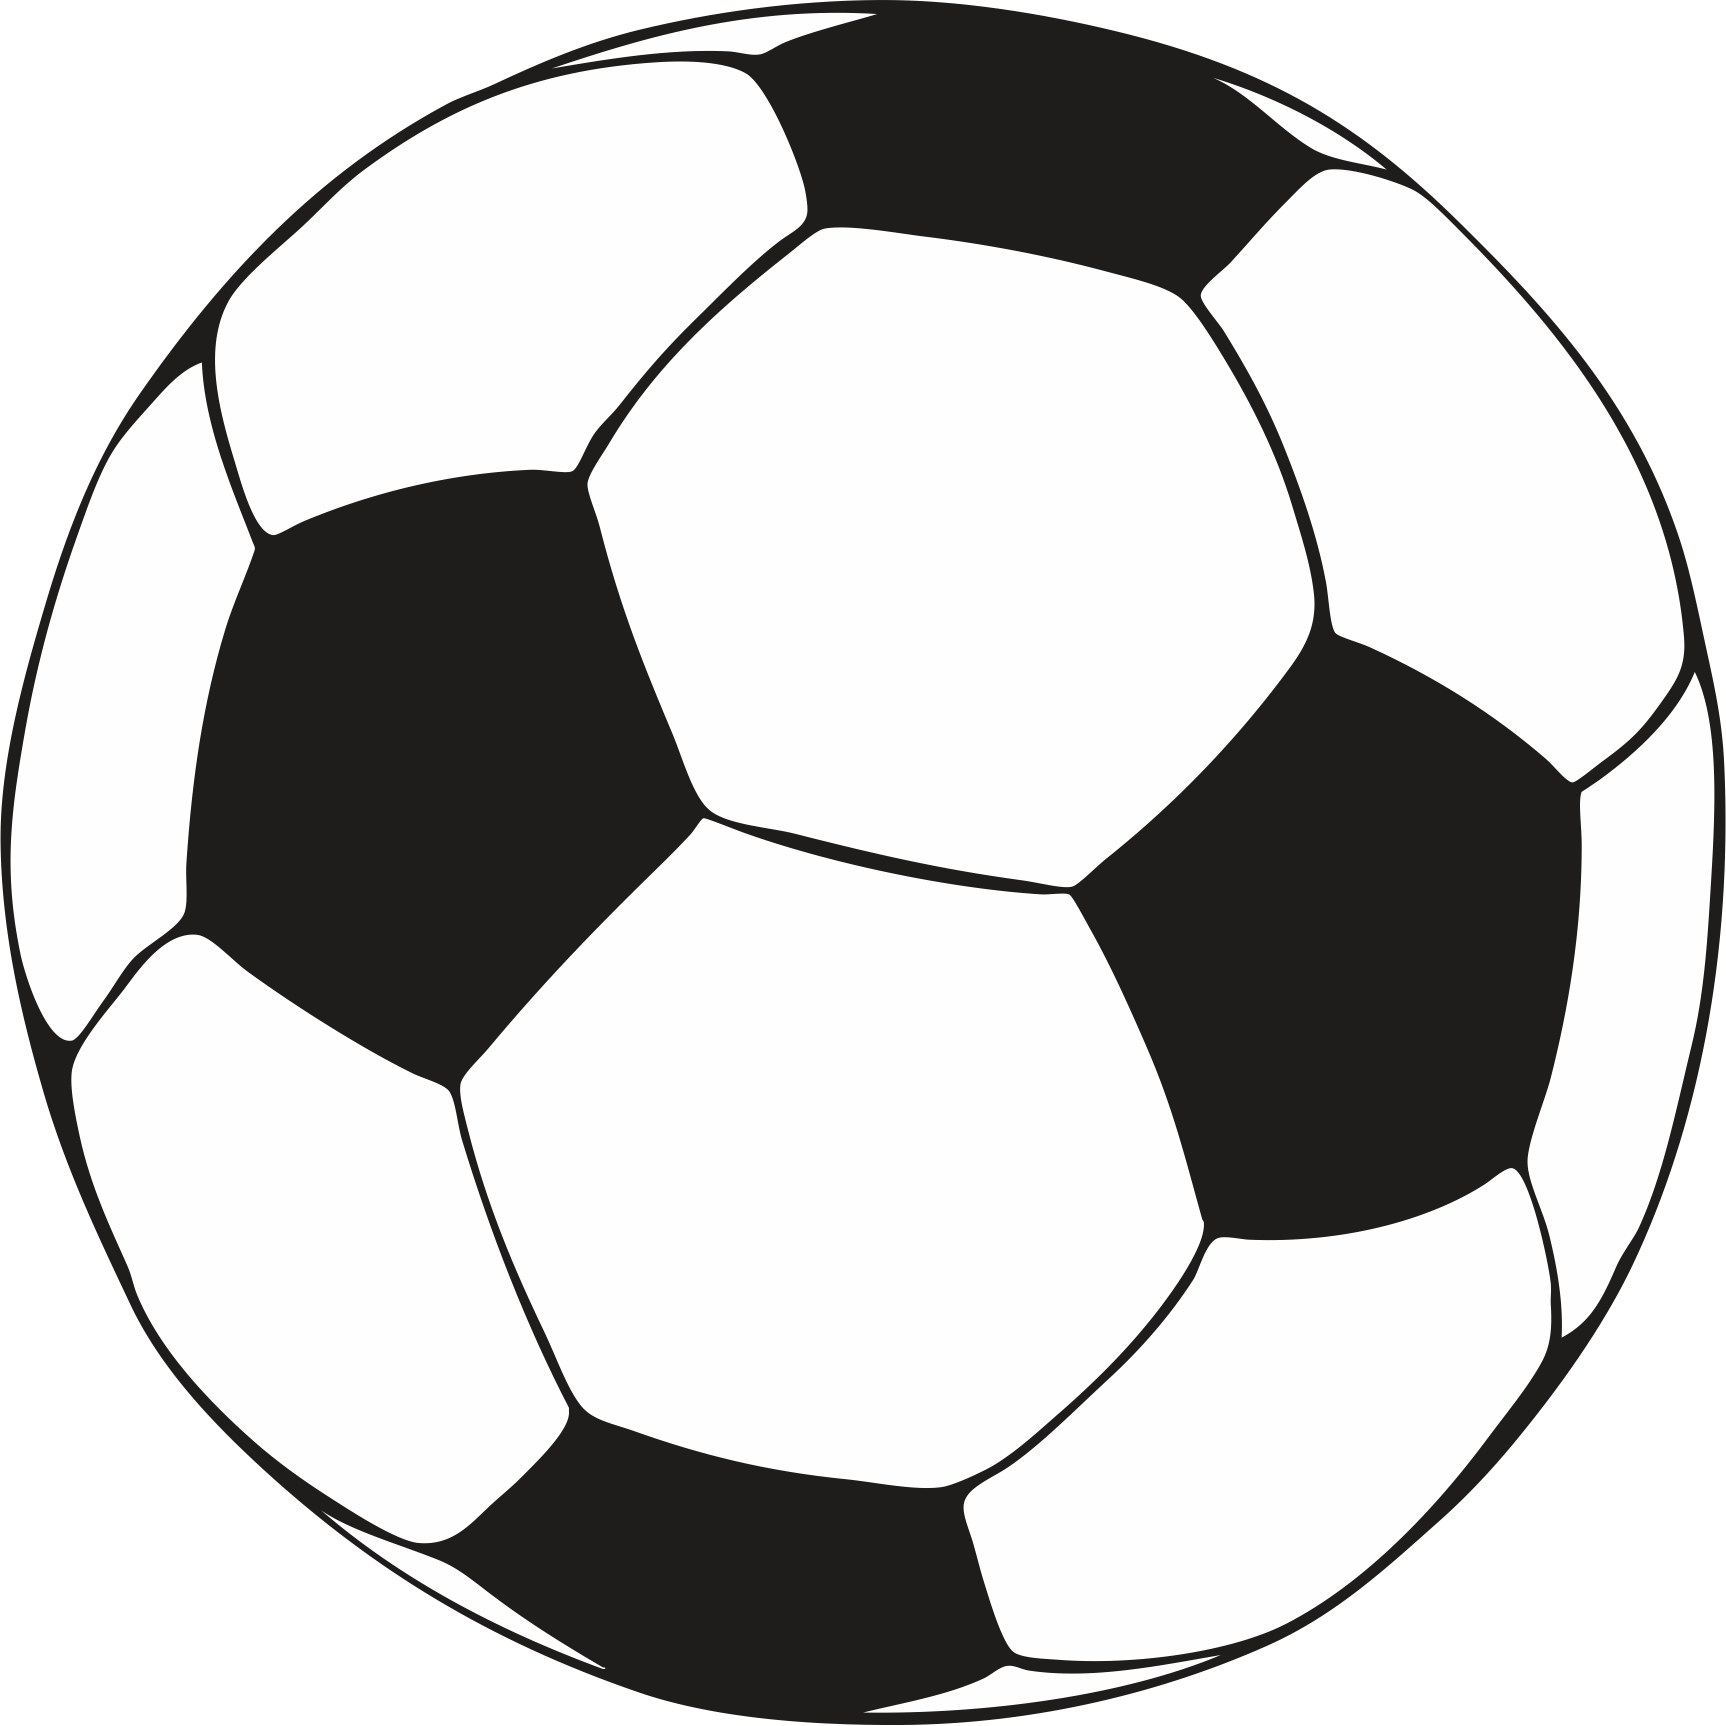 Printable Picture Of A Soccer Ball - ClipArt Best